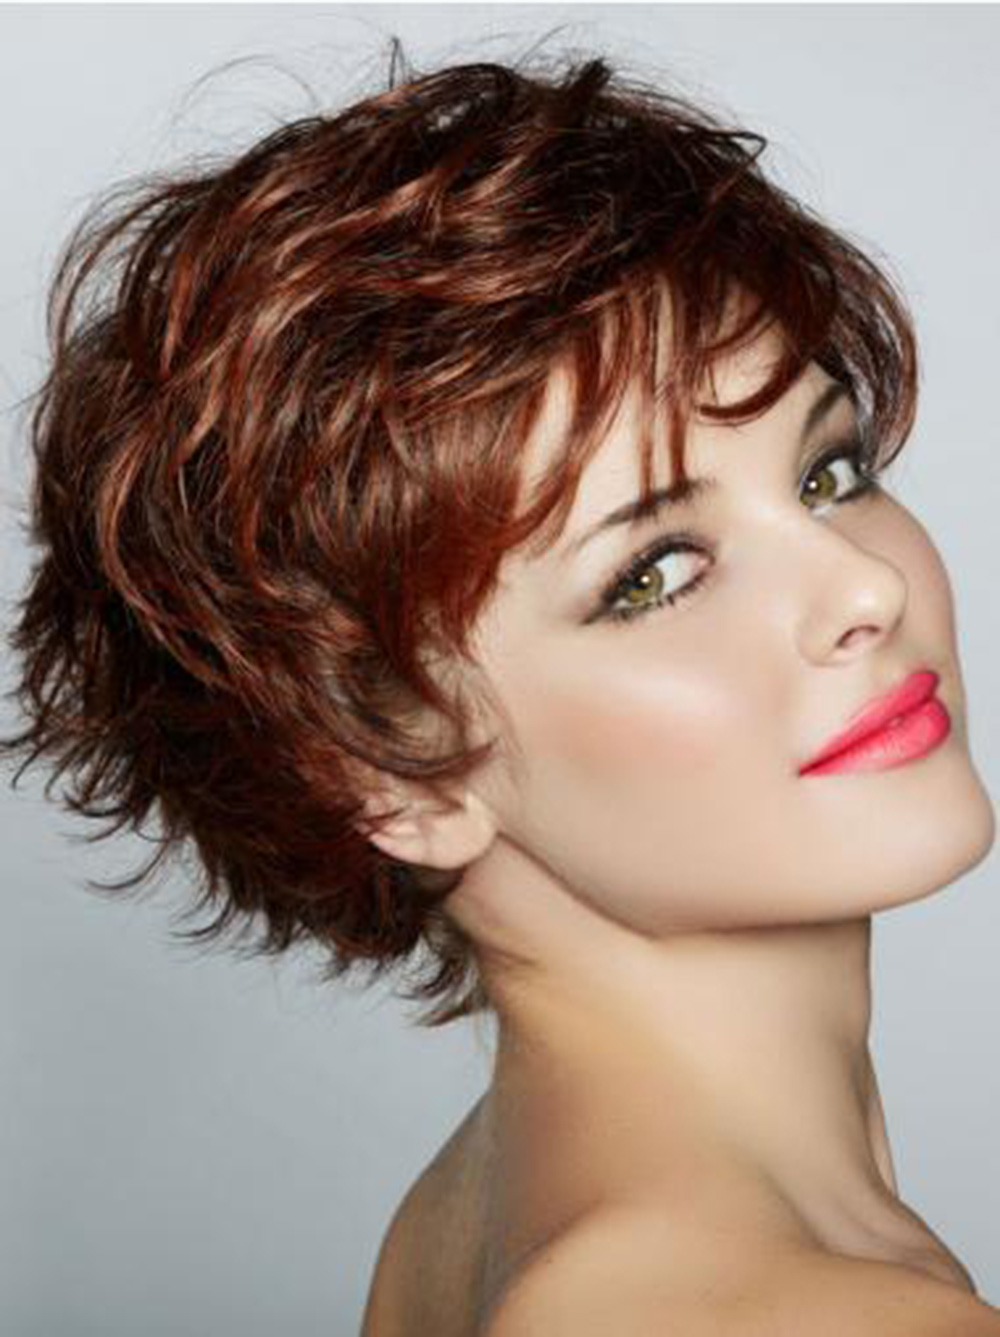 Capless Human Hair blend wig short Wavy Stylish 9.25 Inch Wigs costume wig for white women